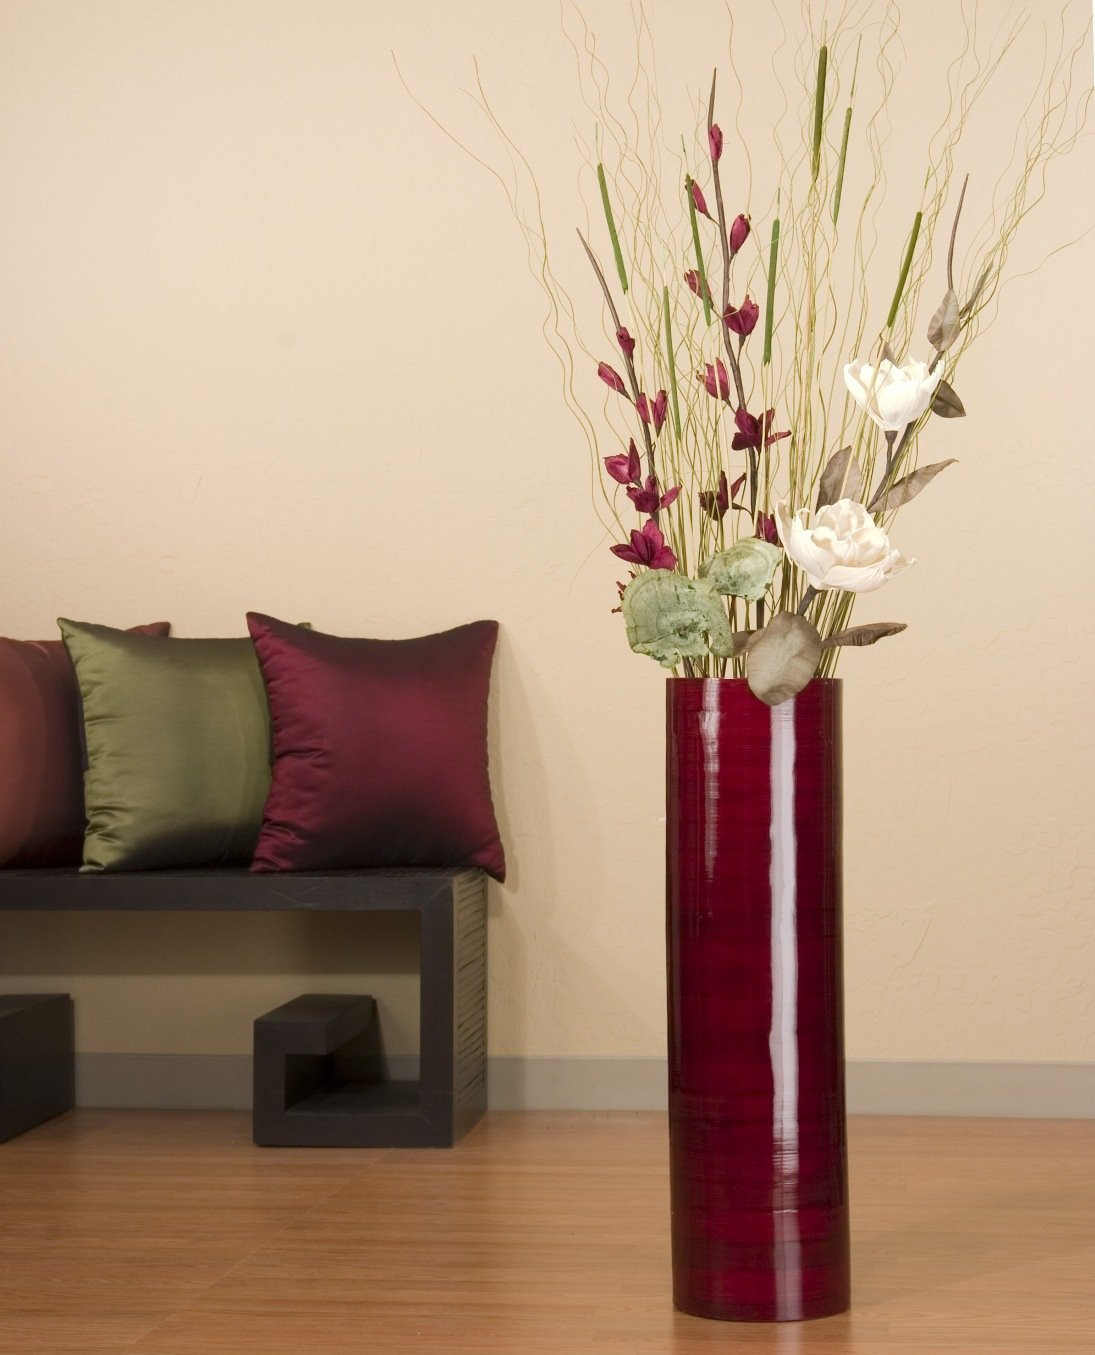 tall floor vase decoration ideas of tall floor vase collection h vases tall floor i 0d over 32 inches intended for tall floor vase pics elegant tall vase decoration ideas 14 decorating for vases awesome h of